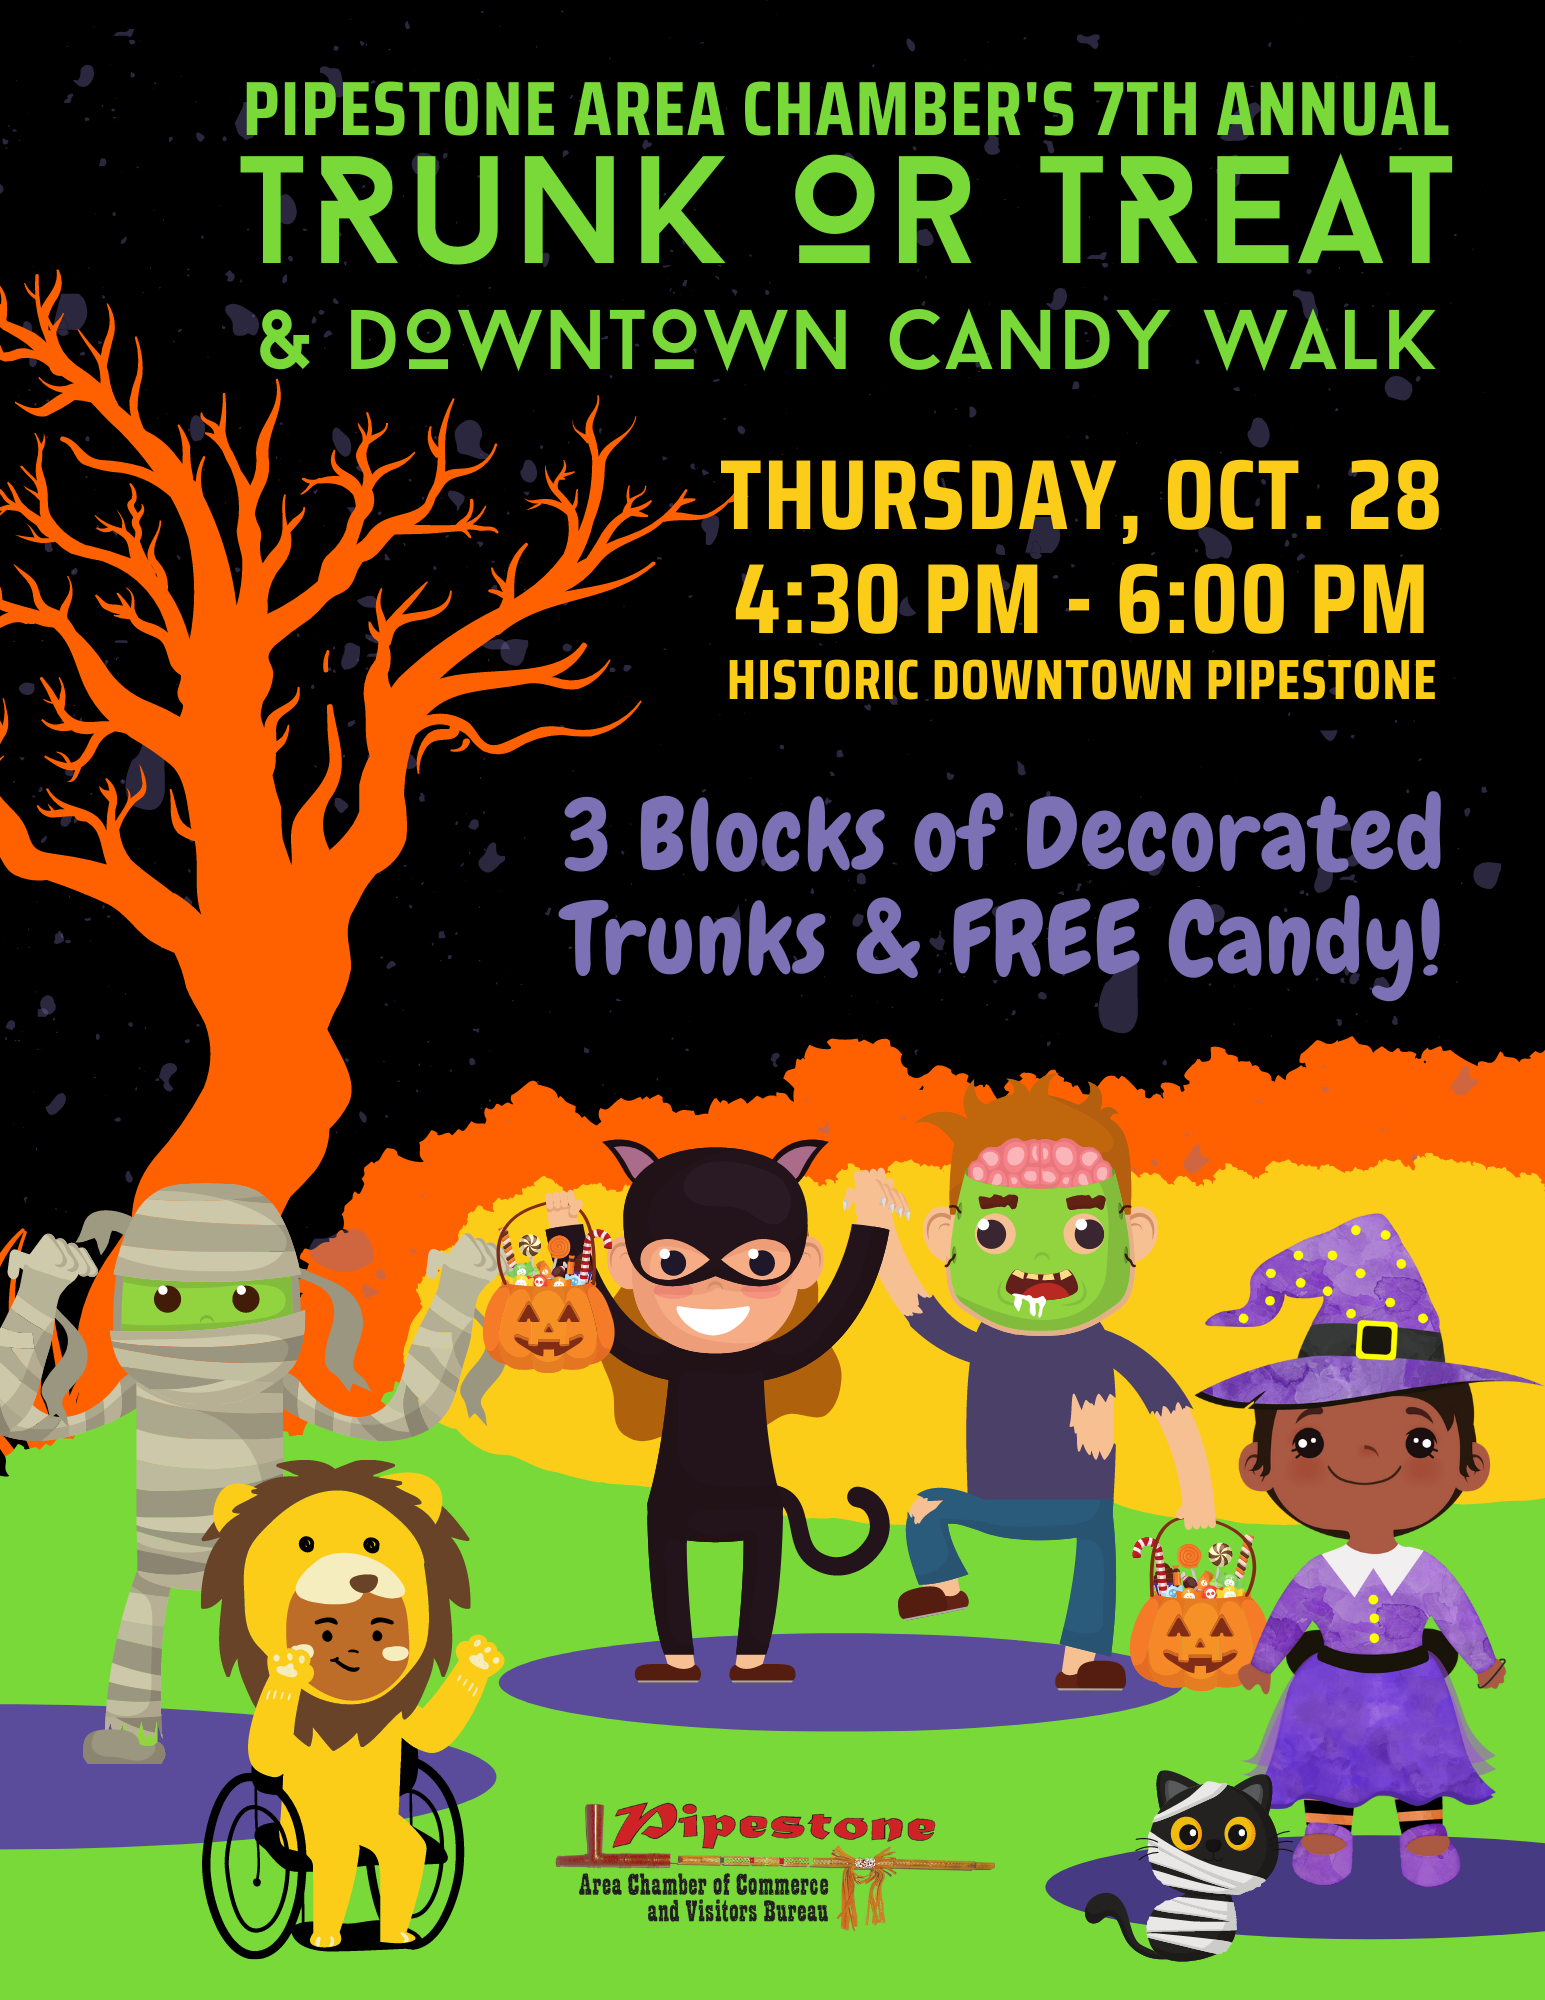 7th Annual Trunk or Treat & Downtown Candy Walk